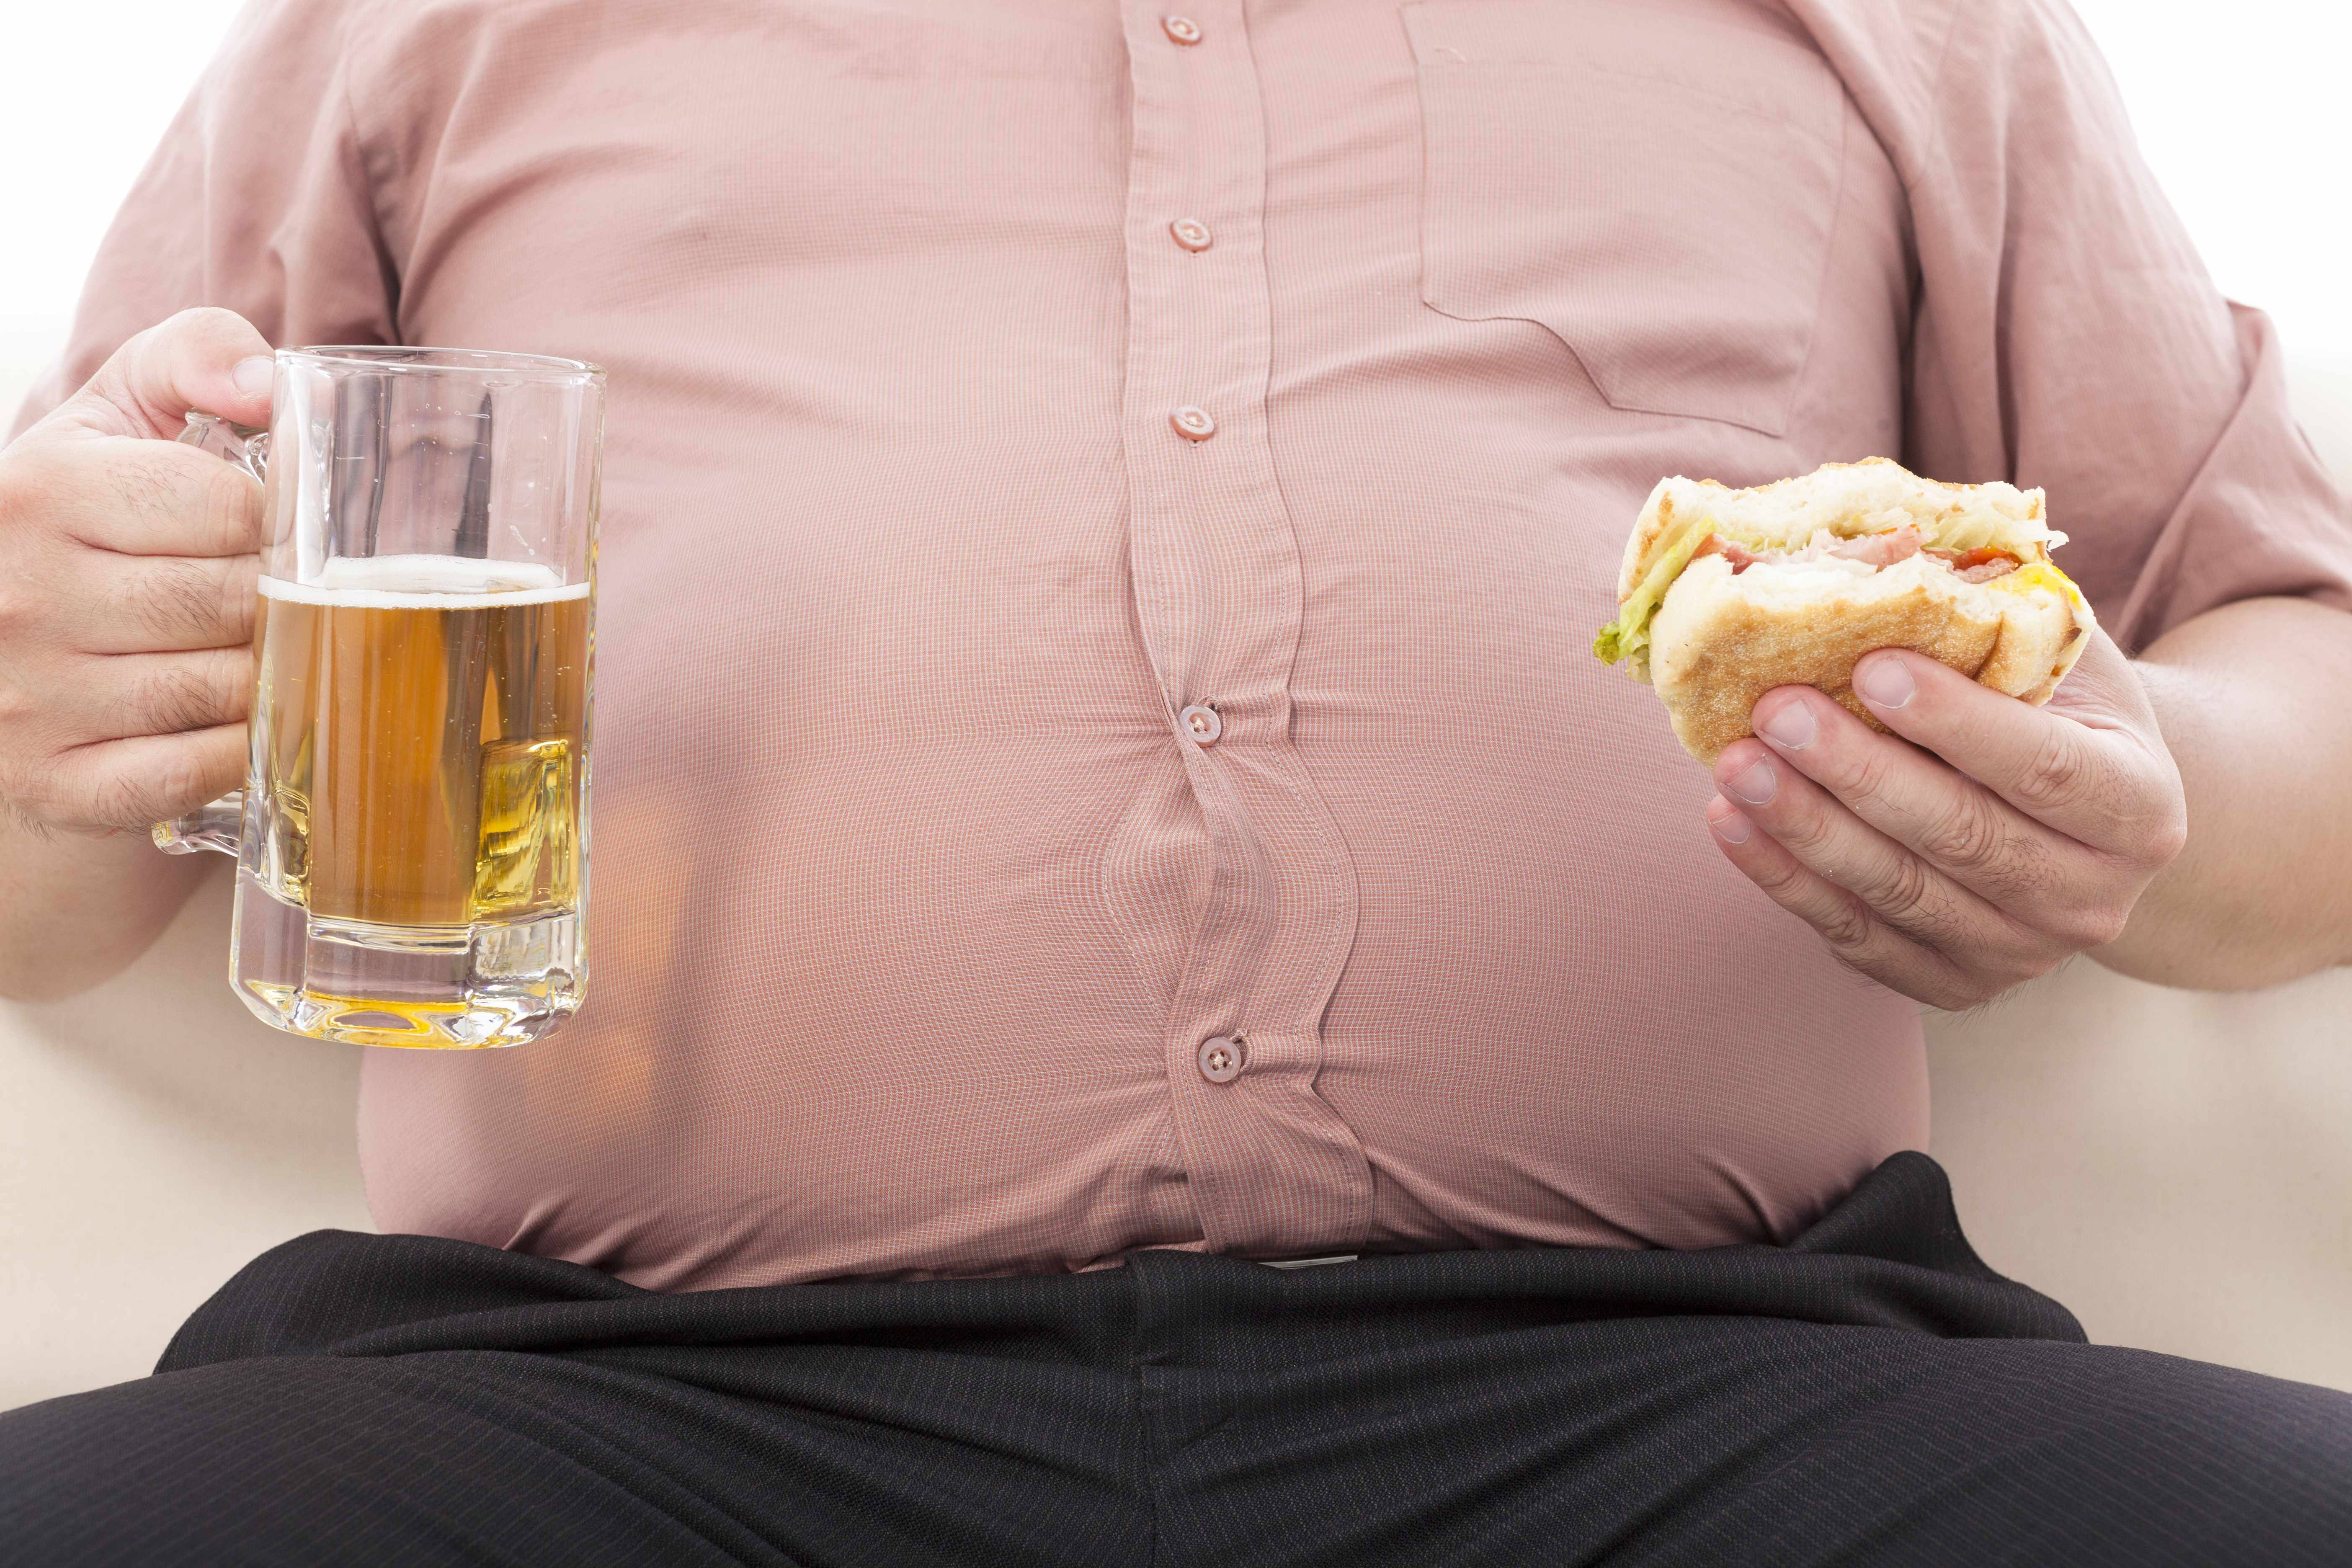 the mid-section of an overweight obese man holding a beer and a sandwich in front of his large belly